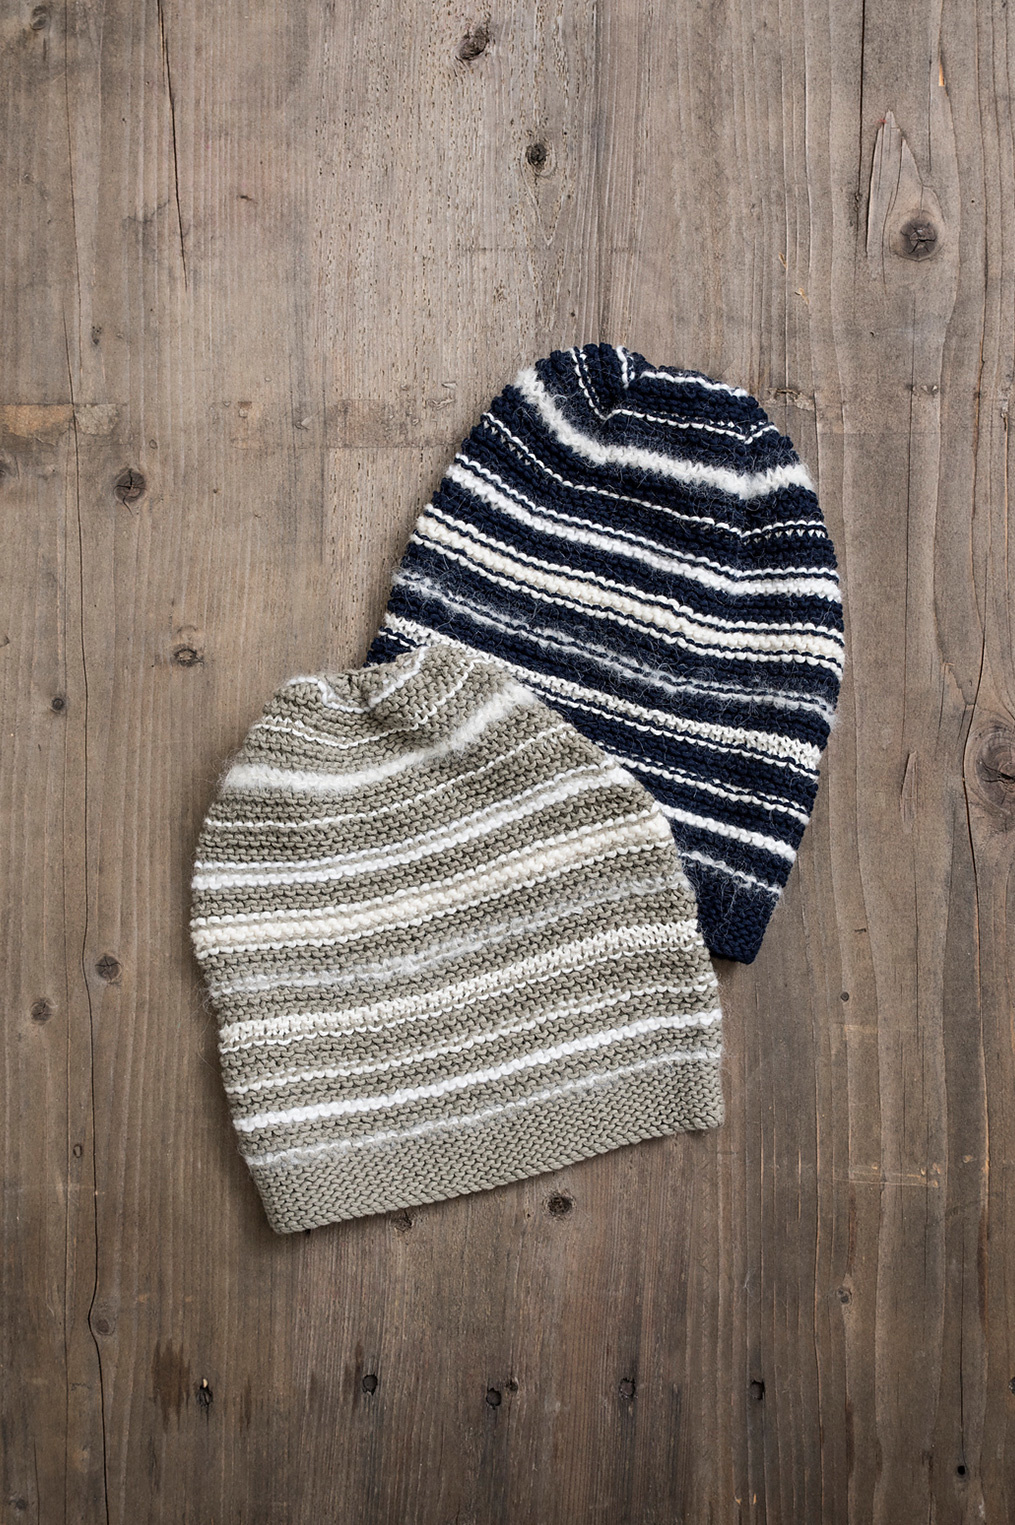 Image of Blue Sky Fibers Quintessential Slouch Hat Kit- Gravel (Discontinued)